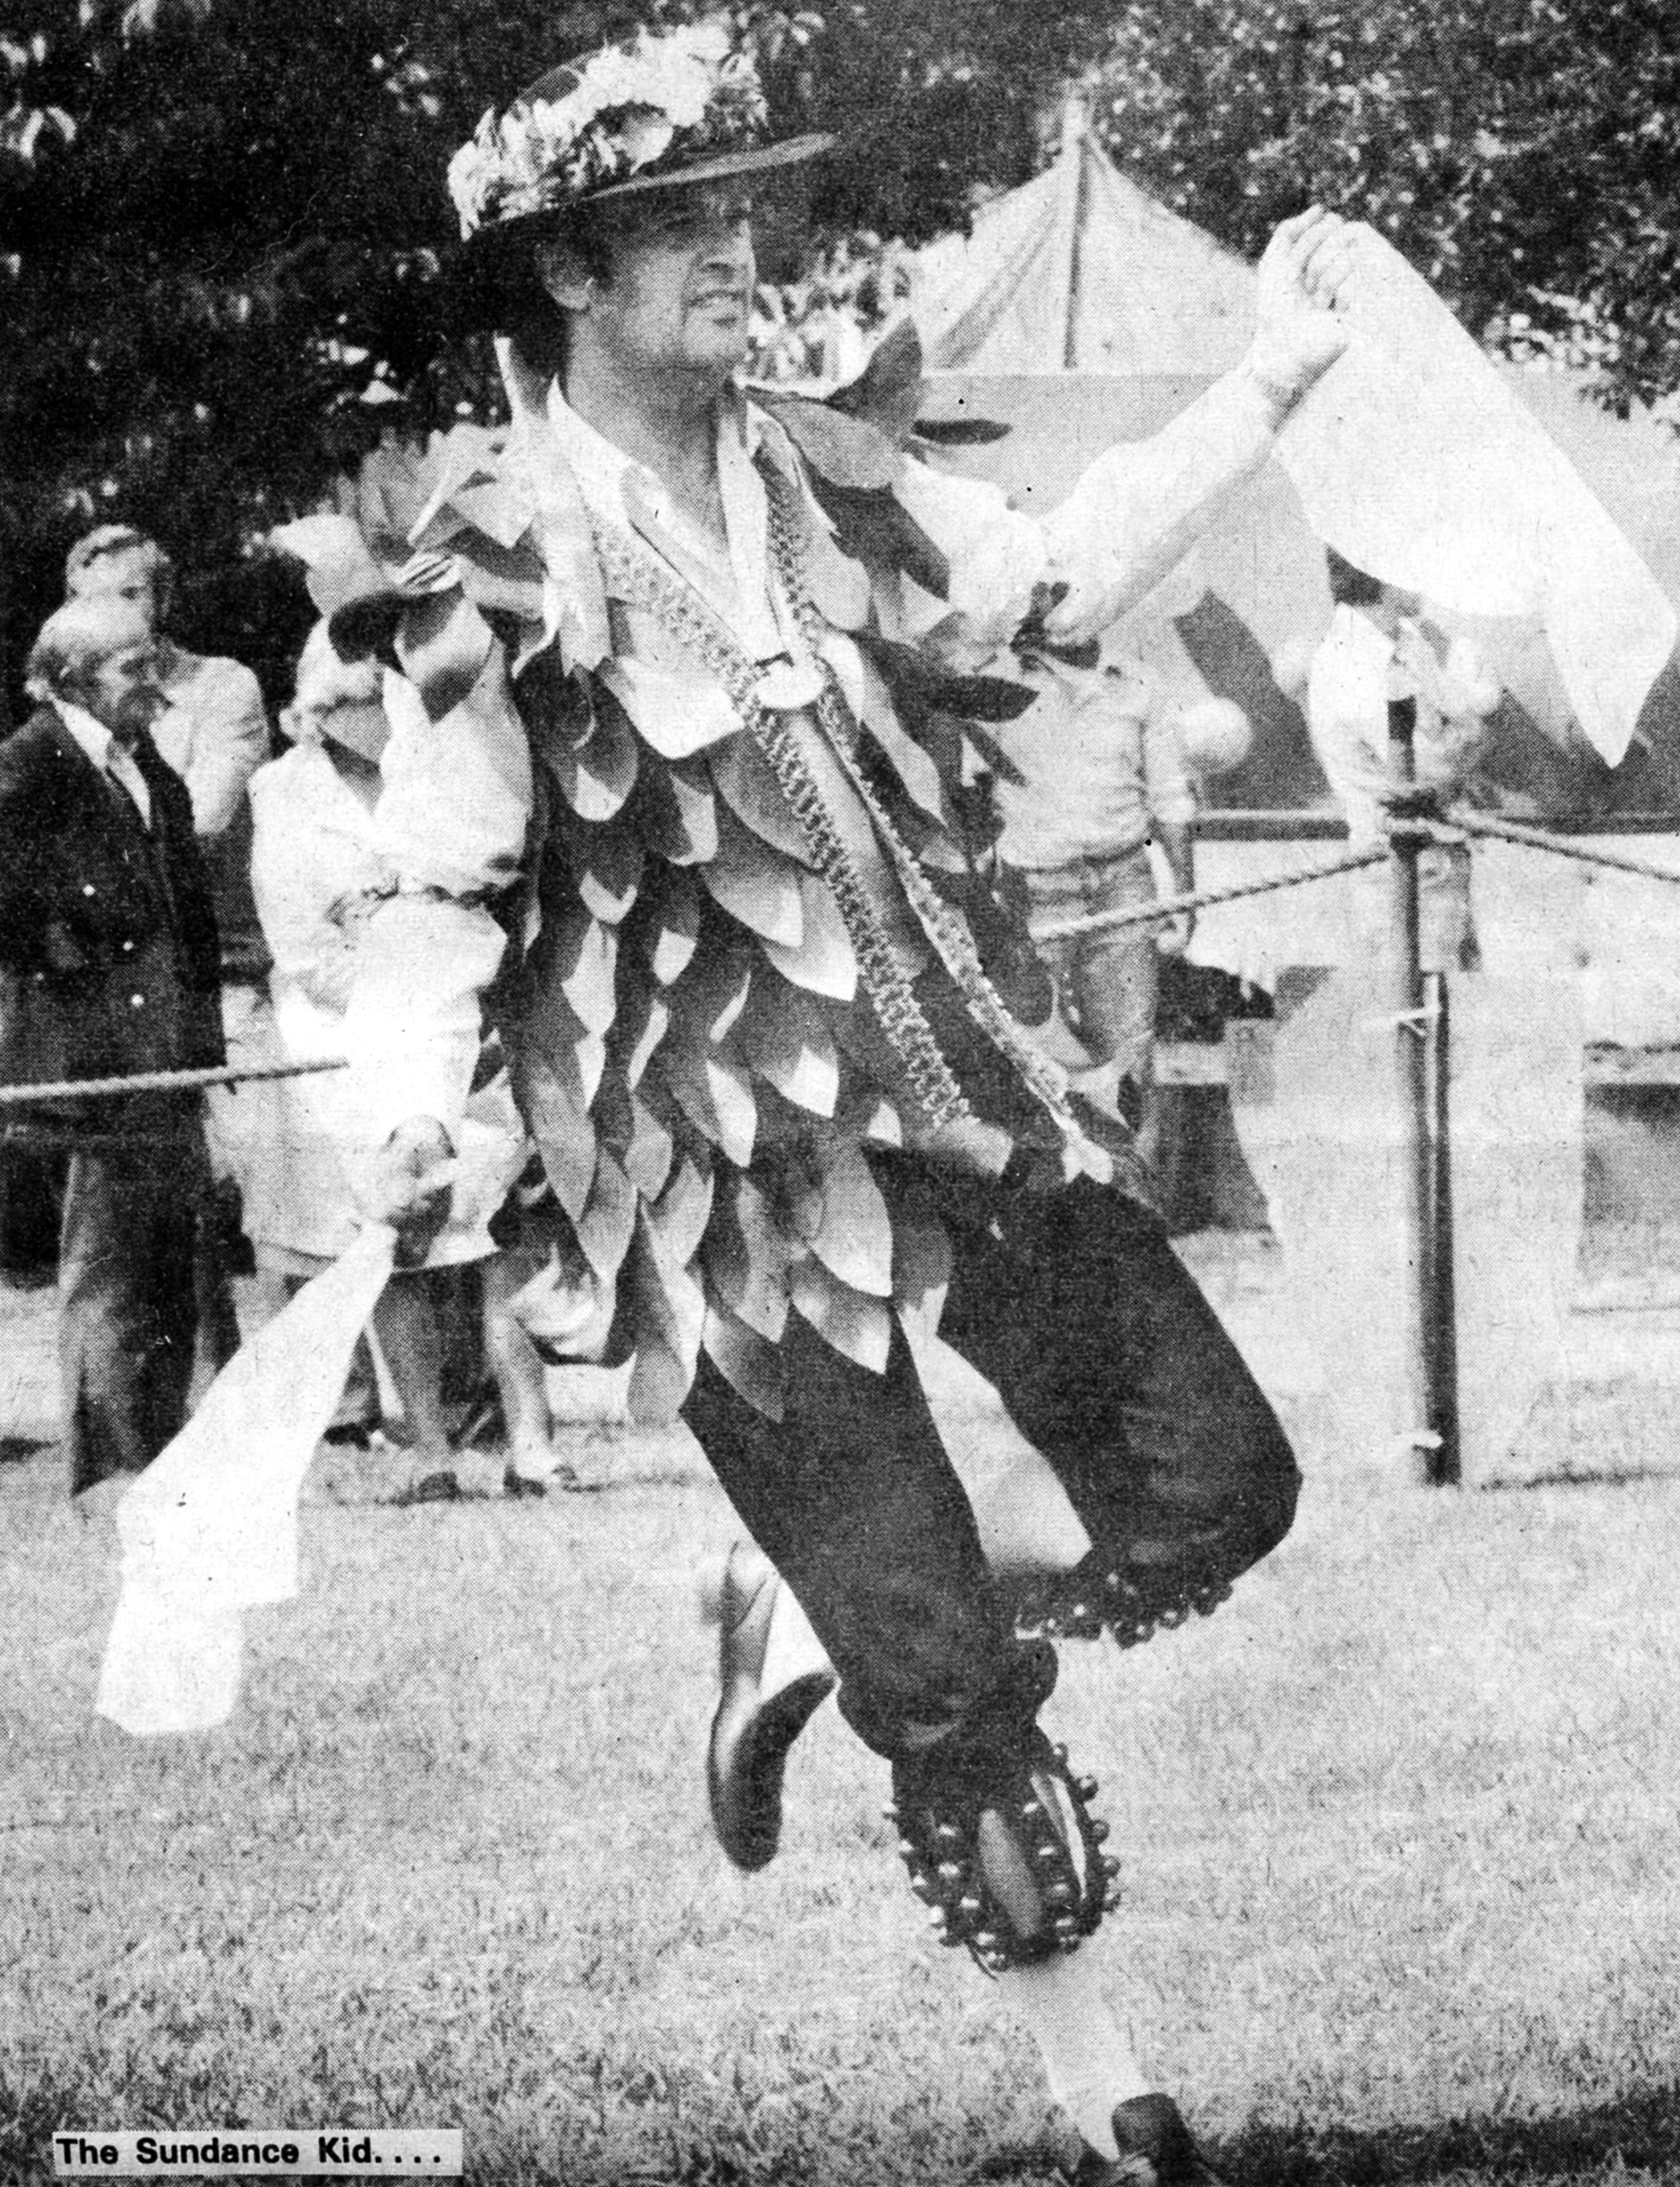 """n 1977, I was """"Foreman of the Morris"""" with English Miscellany - here dancing a jig (Princess Royal - Fieldtown) in Radlett (Herts.) on 9th July. Photo scanned from a copy of the local paper.Note the 19 inch hankies. Specially made as I found a reference in The Morris Book to using hankies that size- much larger than you buy in the shops. Looks much better than the normal ones. The jacket was made for three musicians - myself, Tony Barret, and Graham Lyndon Jones, by Tony B's wife. Sadly Tony B and Graham are no longer with us. I wore it recently as a costume when singing in a concert as Papageno, from The Magic Flute!"""